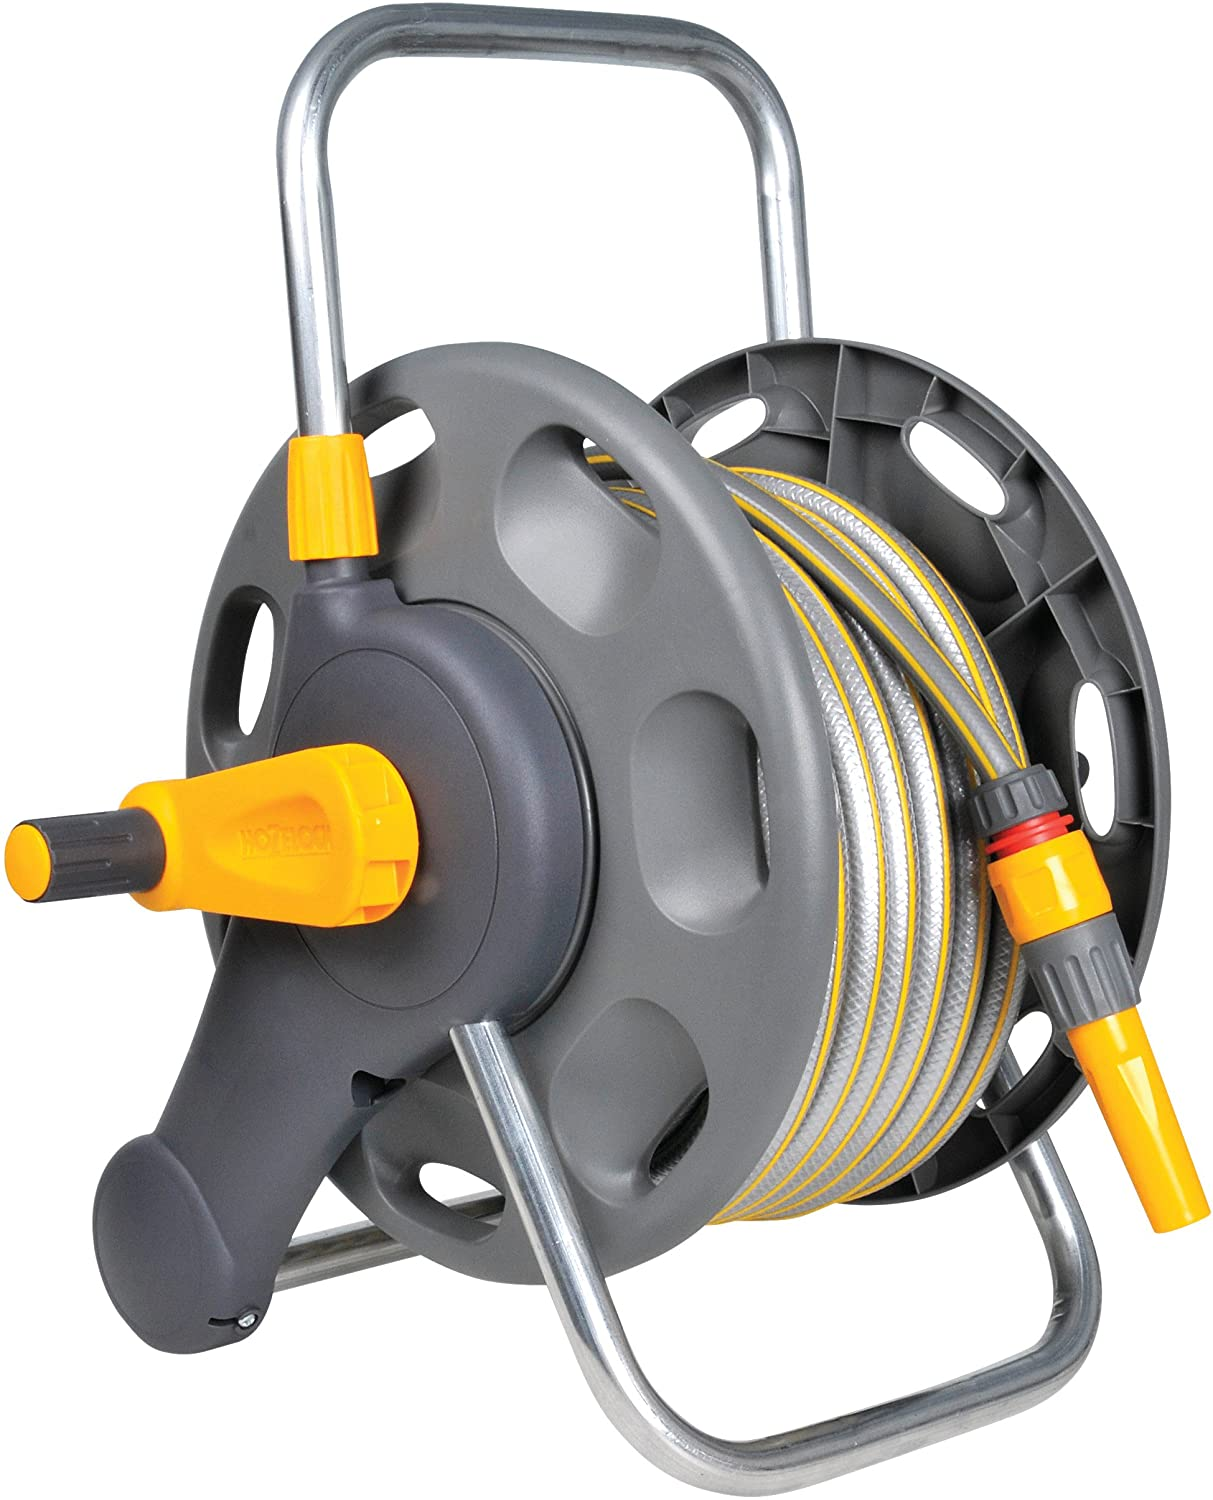 Hozelock Compact 2in1 Reel with 25m Hose Standard